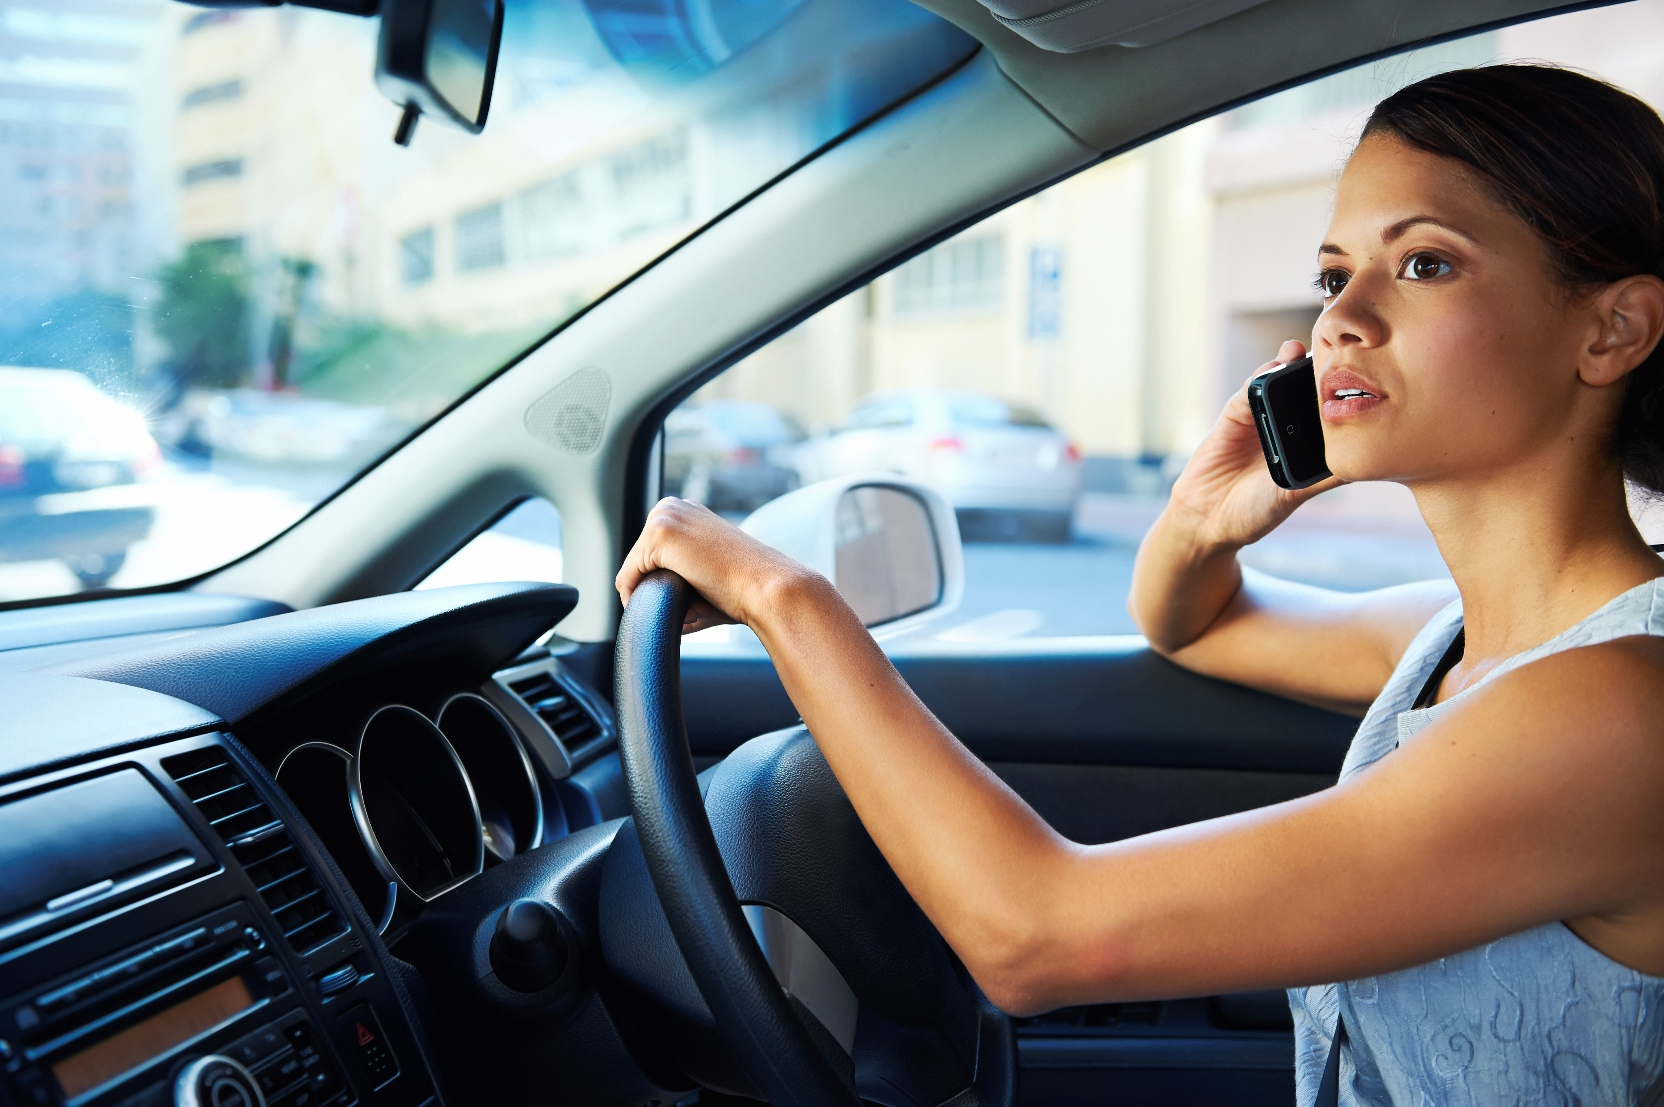 Stock image of a woman talking on a cell phone while driving